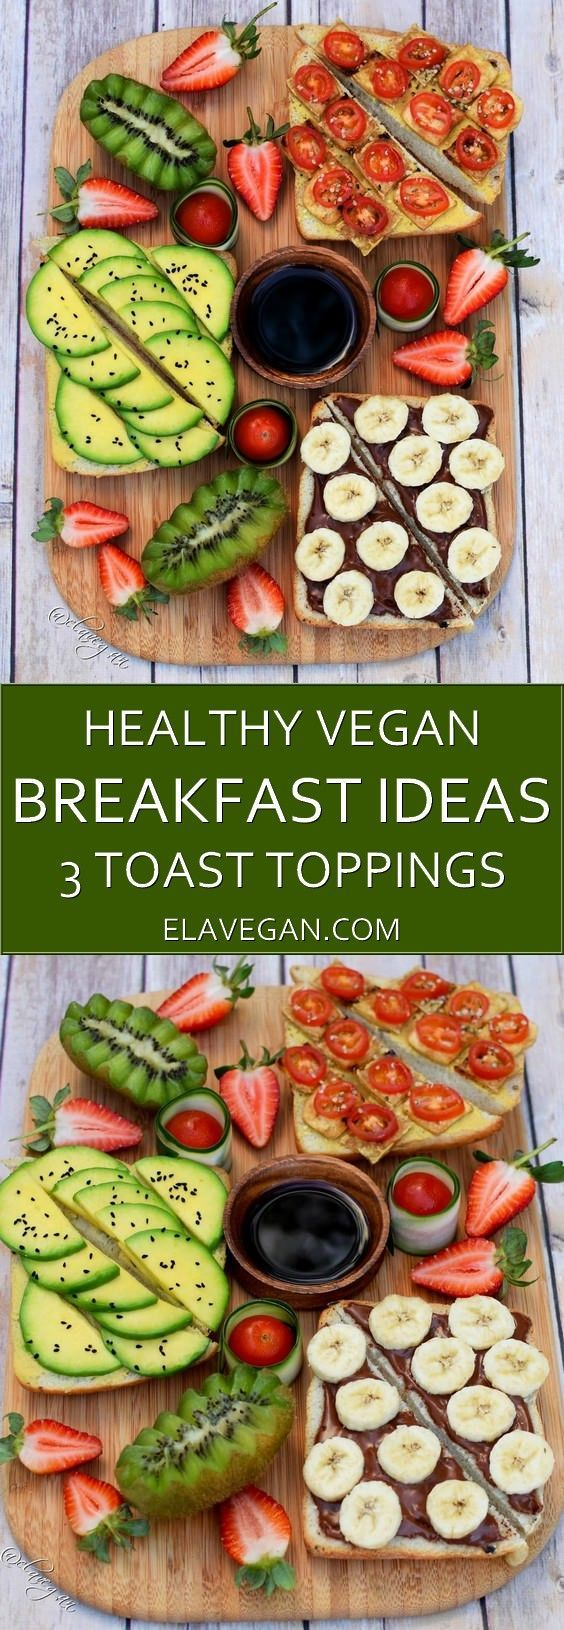 Healthy vegan breakfast ideas. I am presenting you 3 delicious and simple toast toppings. Avocado on toast, tofu on toast and a vegan low-fat chocolate peanut butter spread recipe.